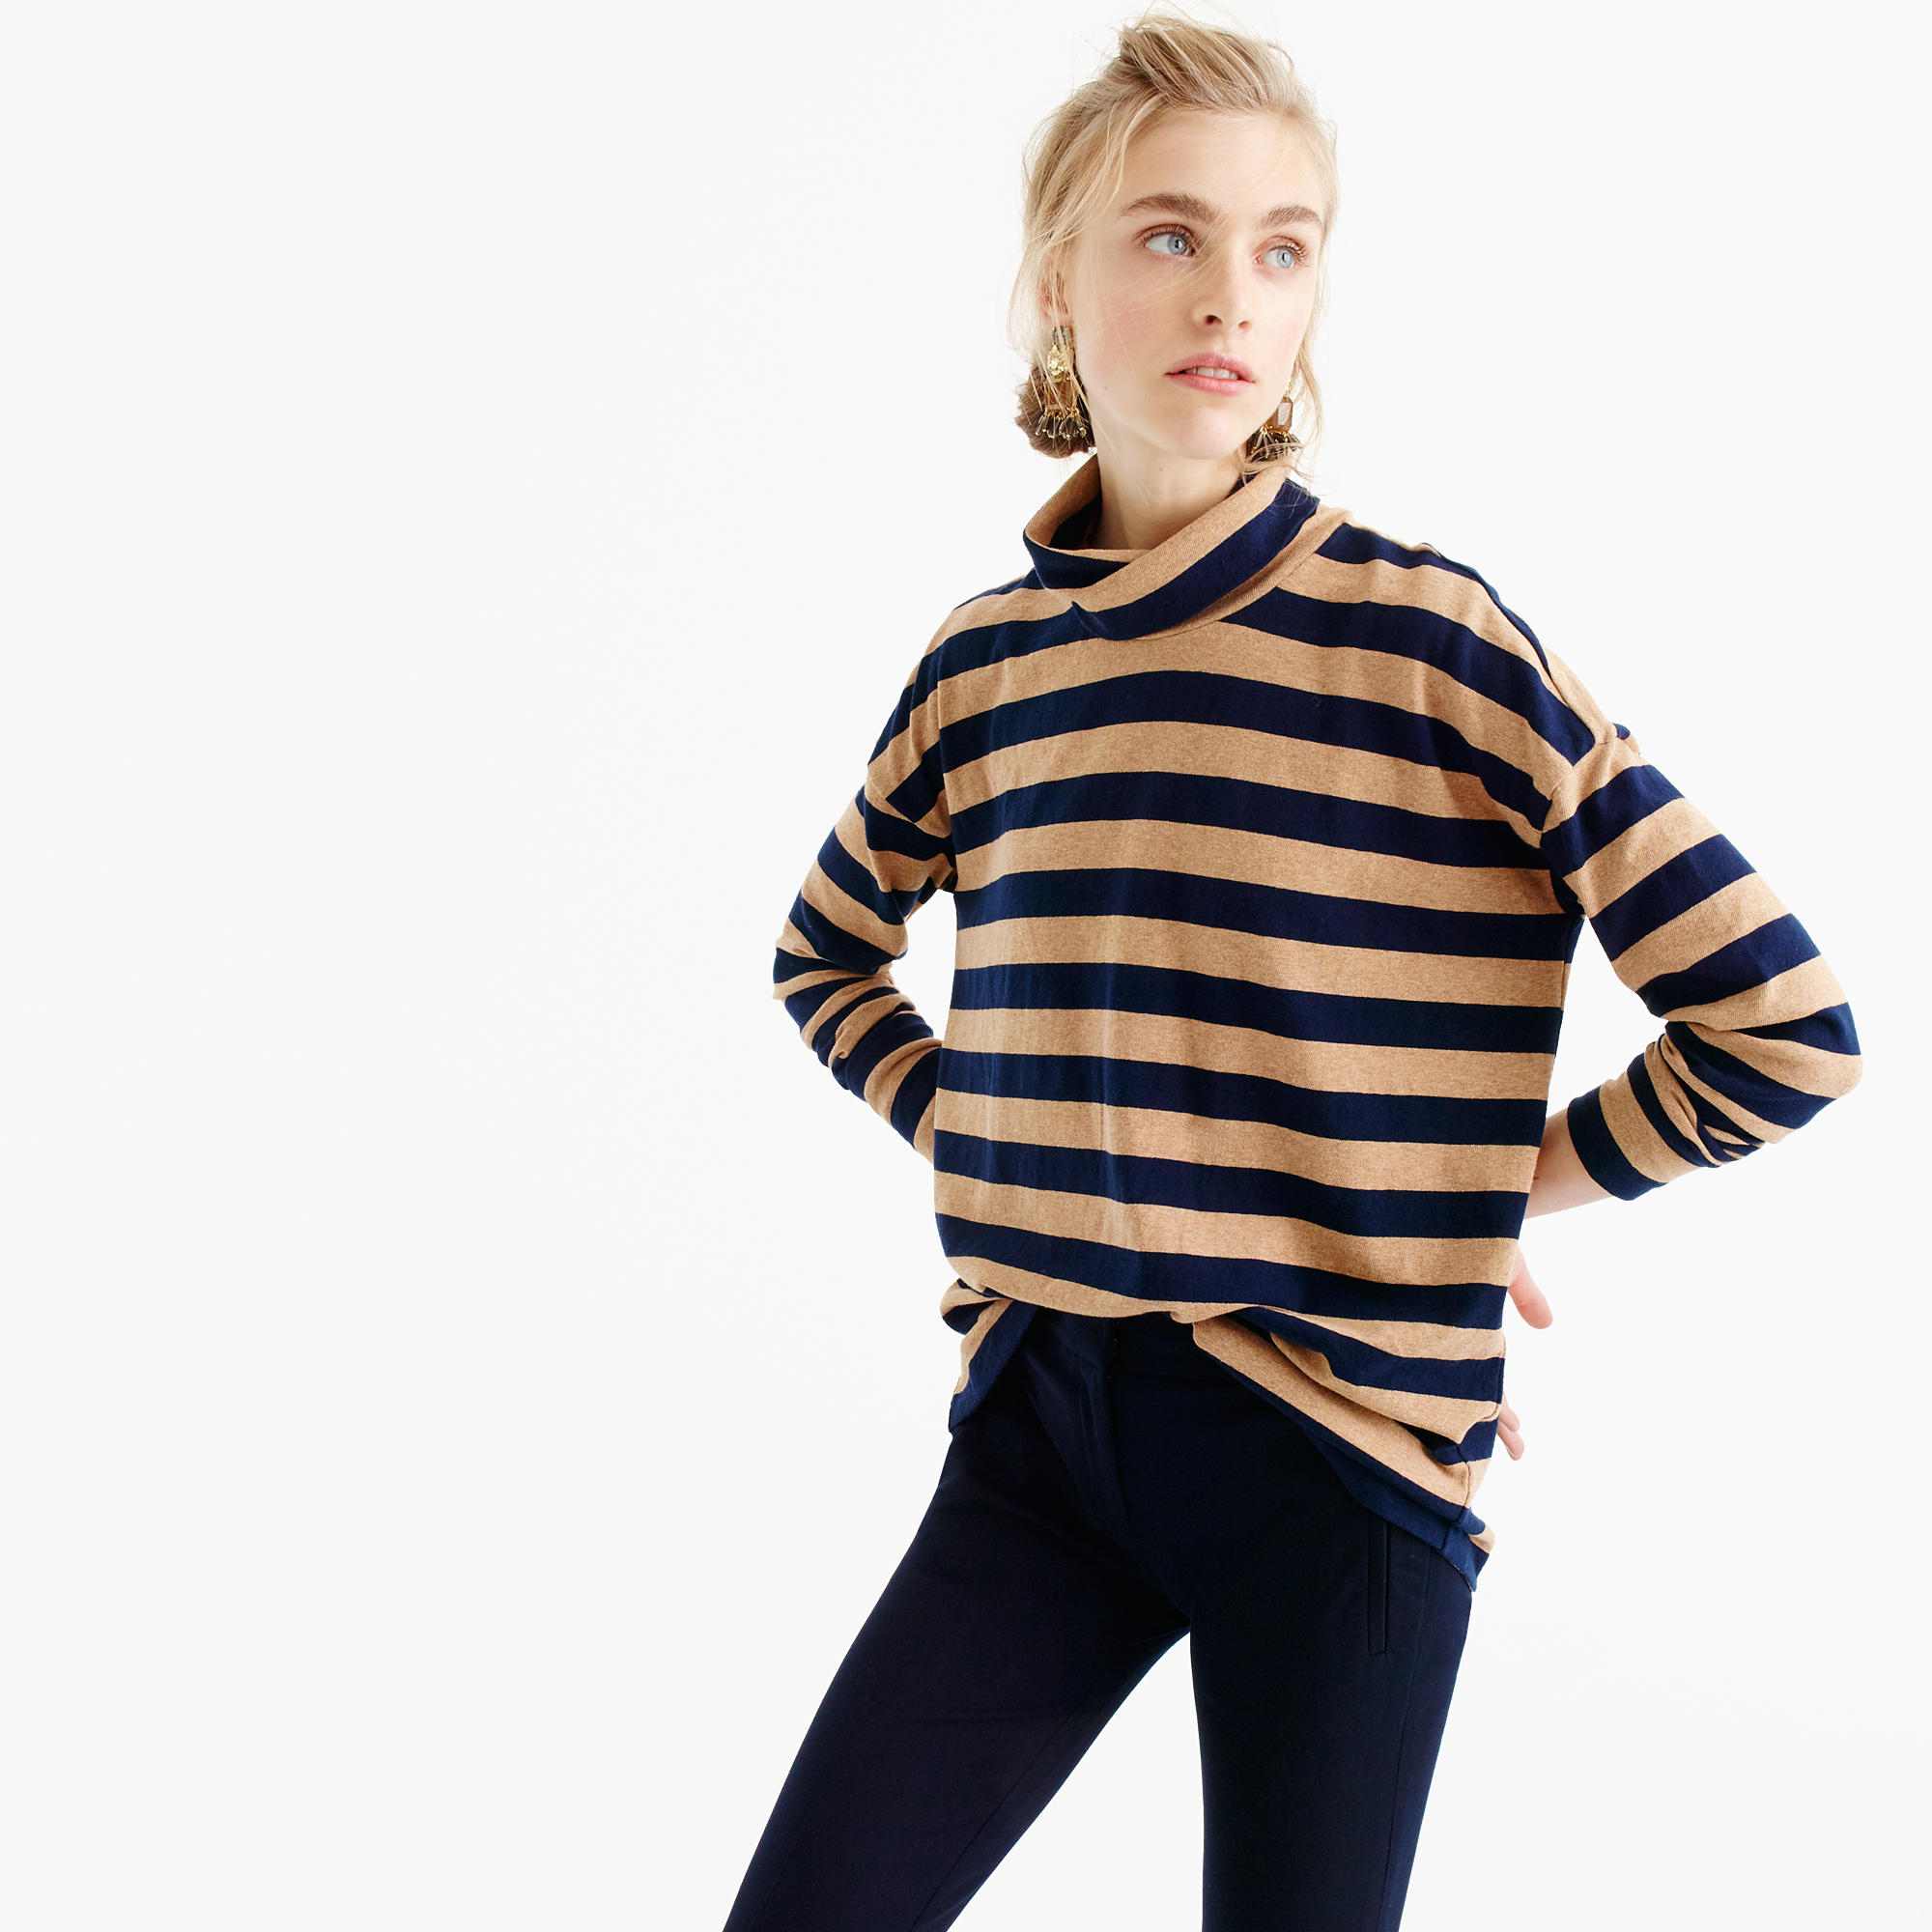 J Crew striped turtleneck |  | see more on www.shoppingmycloset.com